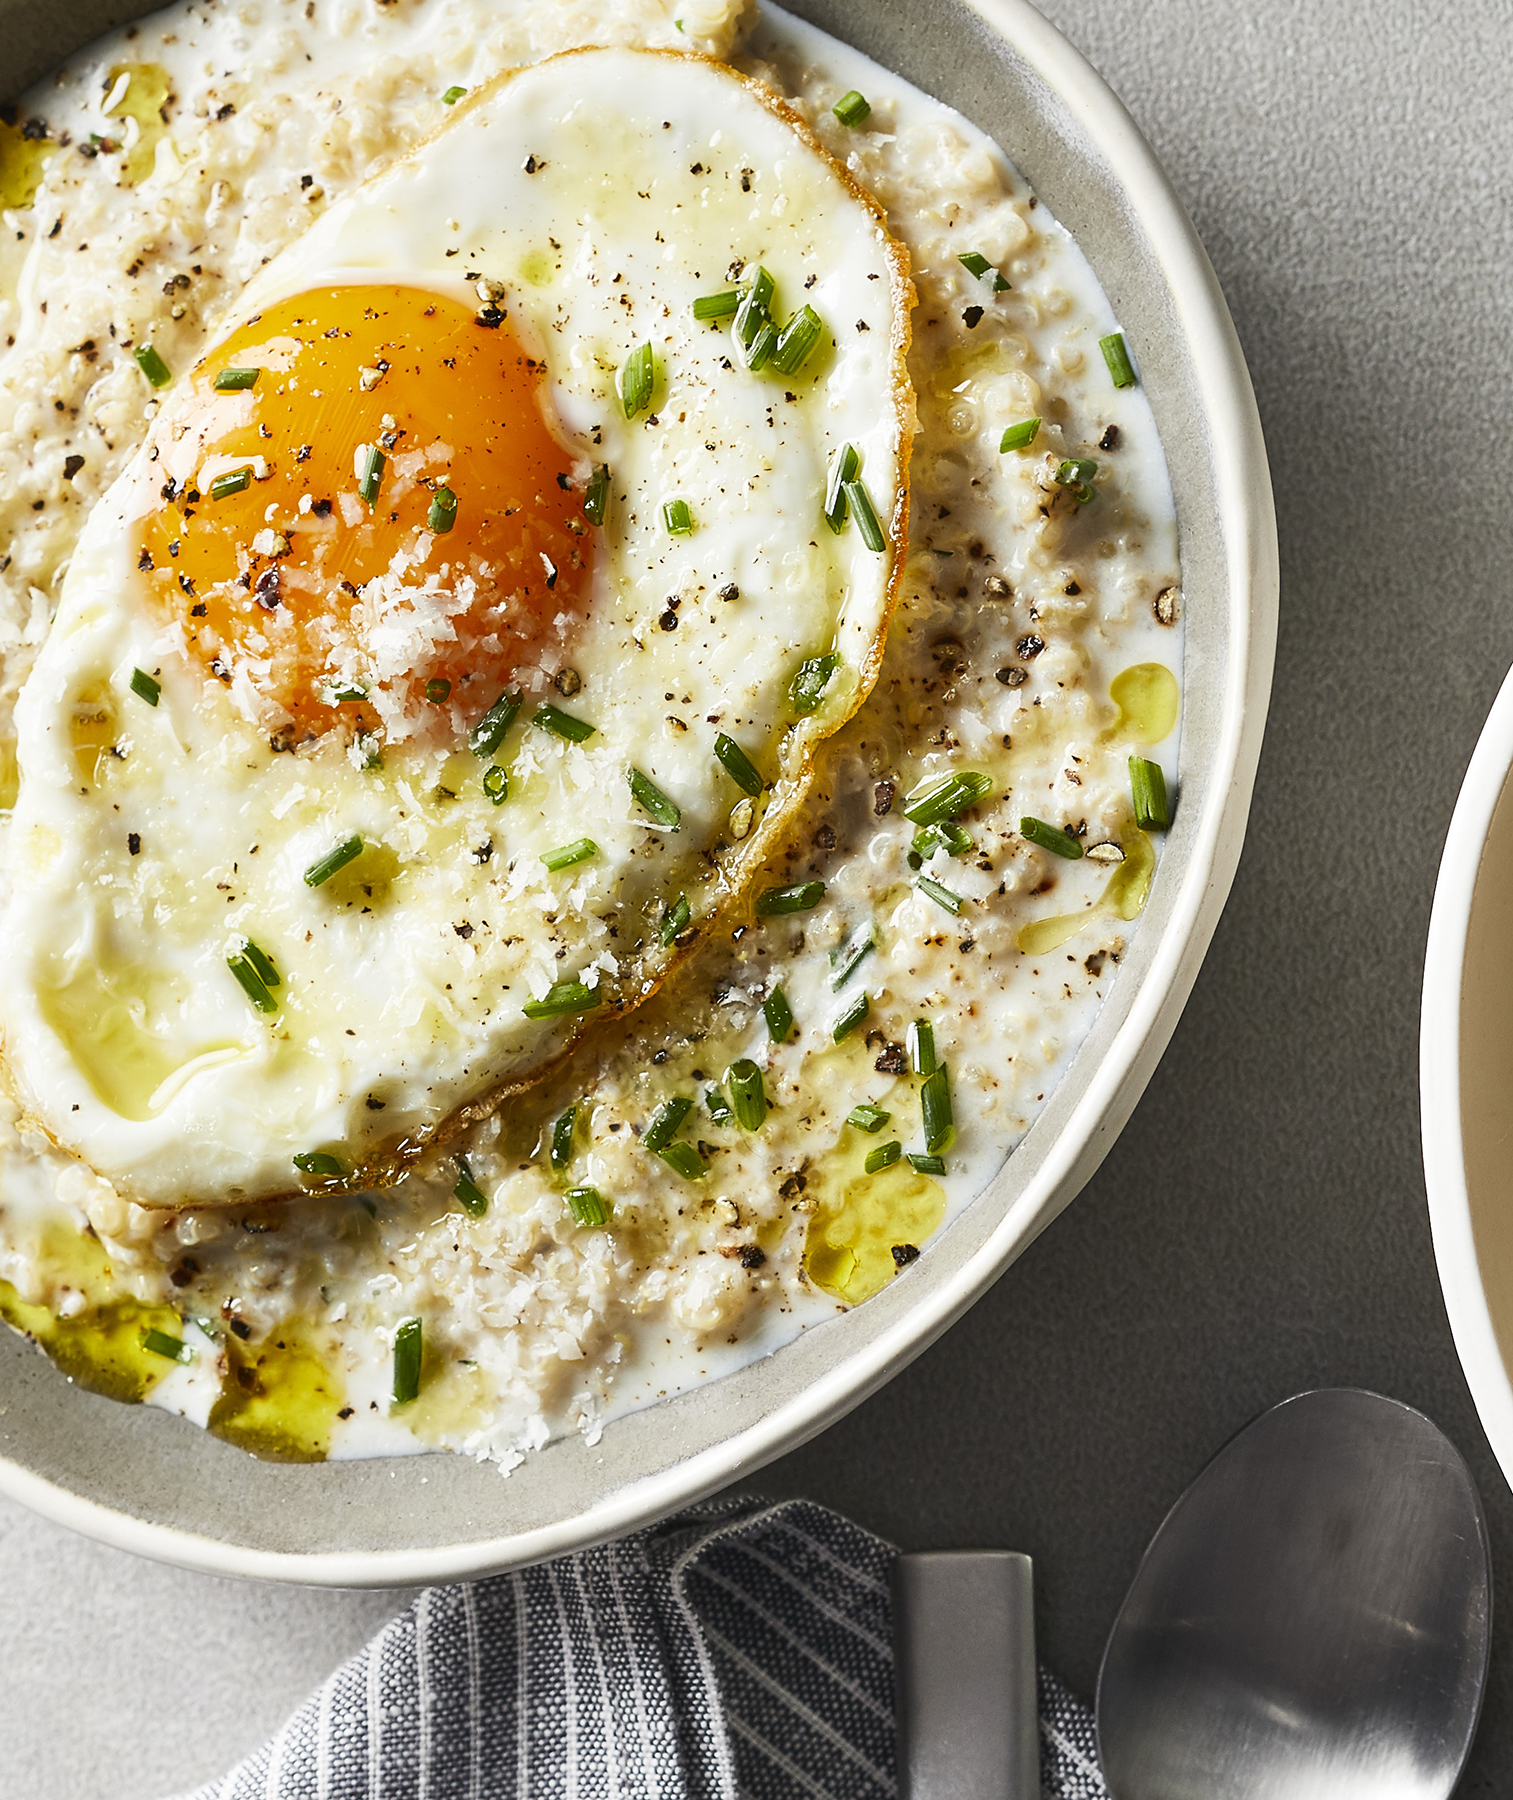 Savory Quinoa Porridge for One